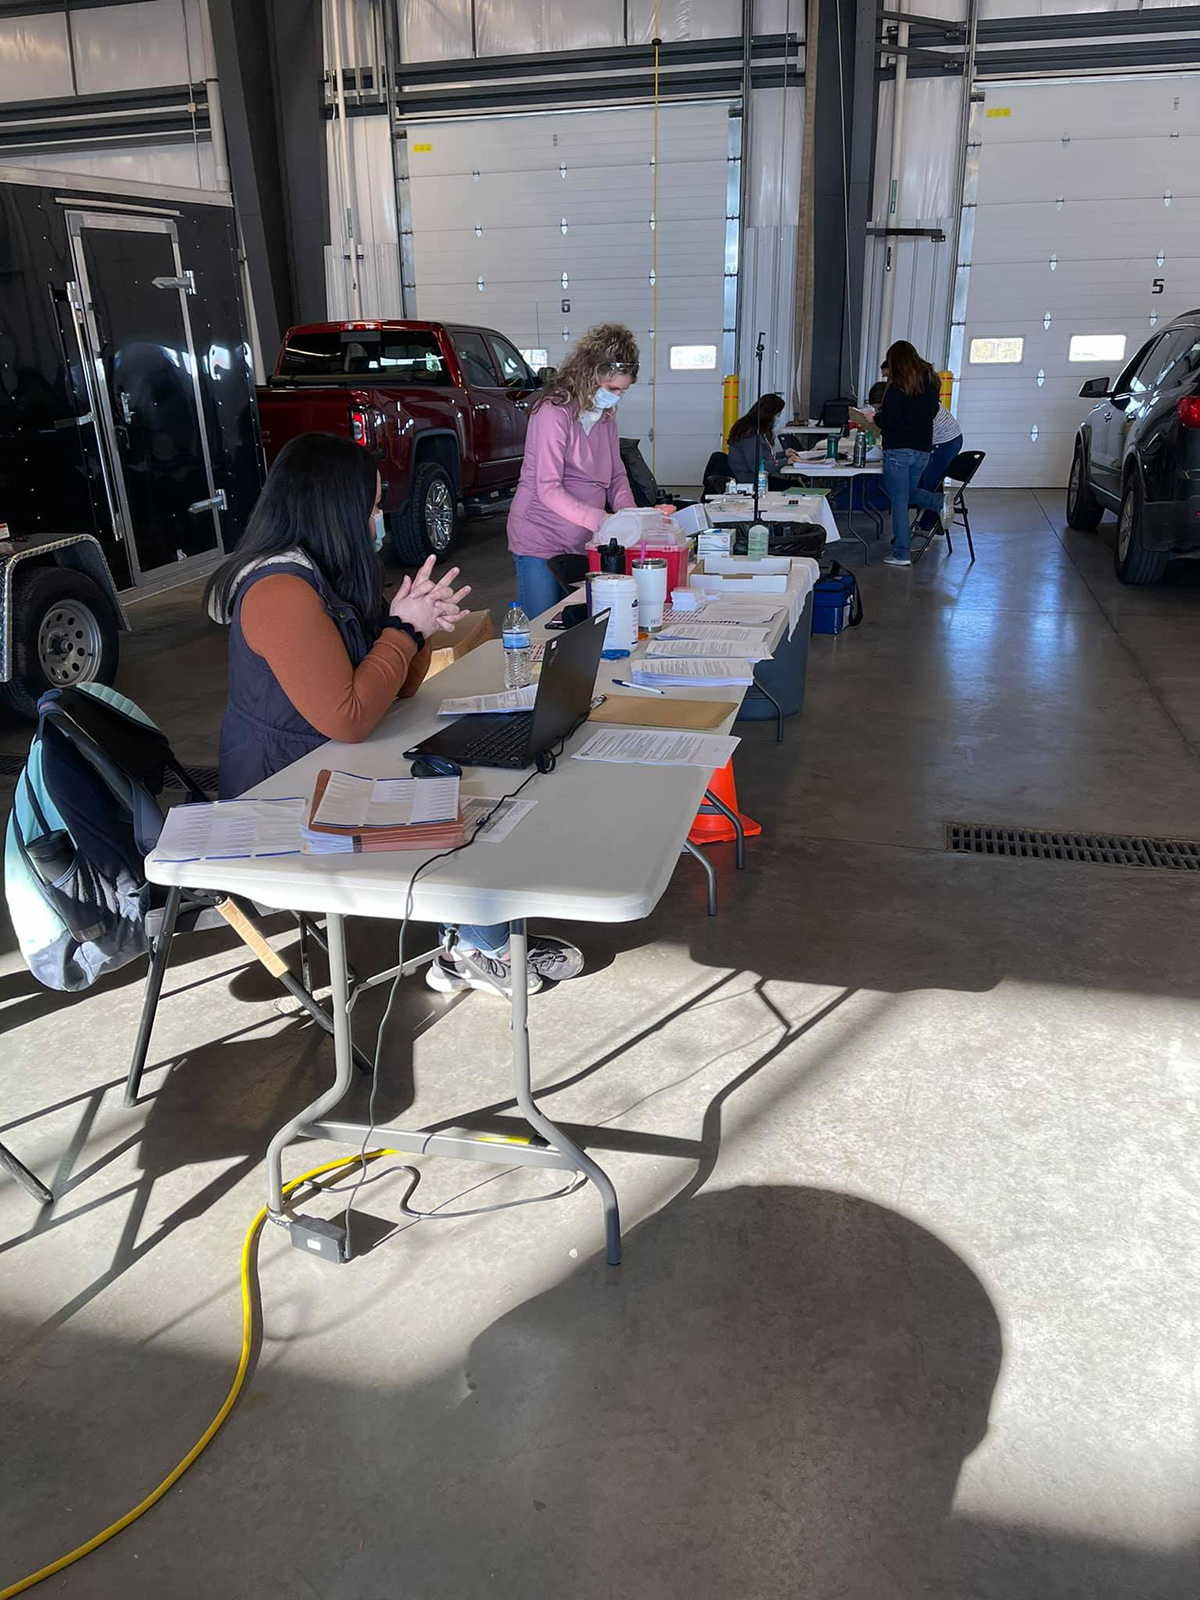 Vaccinators prepare supplies on tables inside a fire station garage